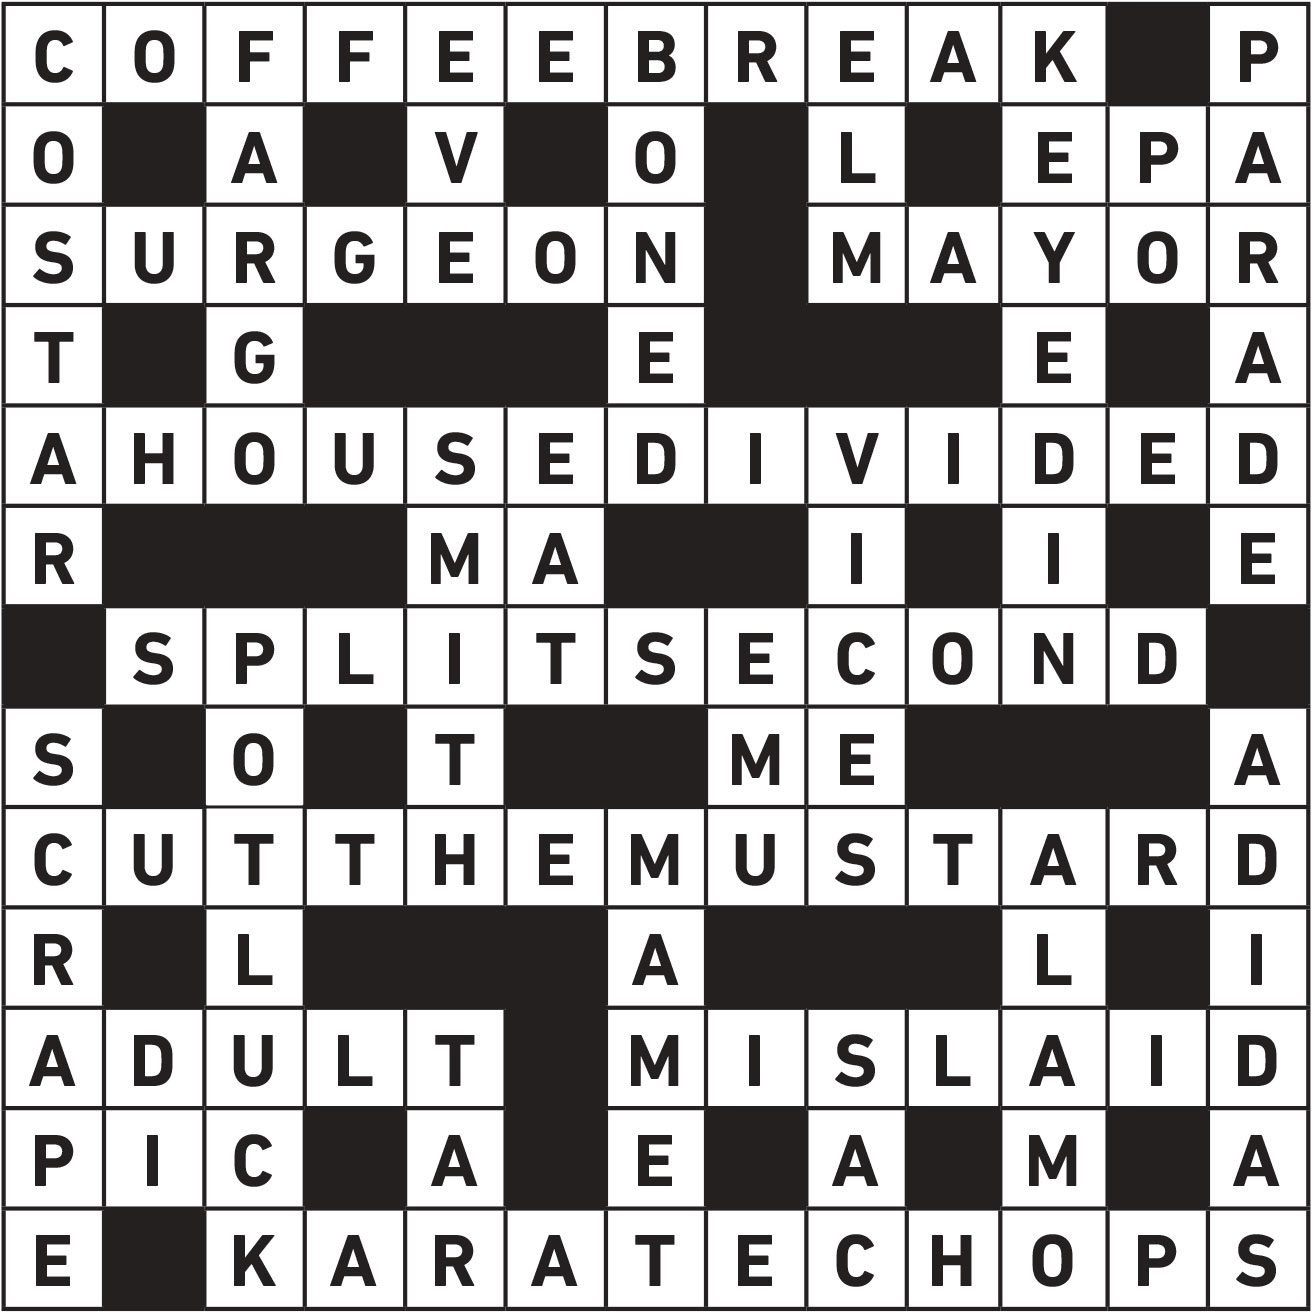 may20 crossword answers